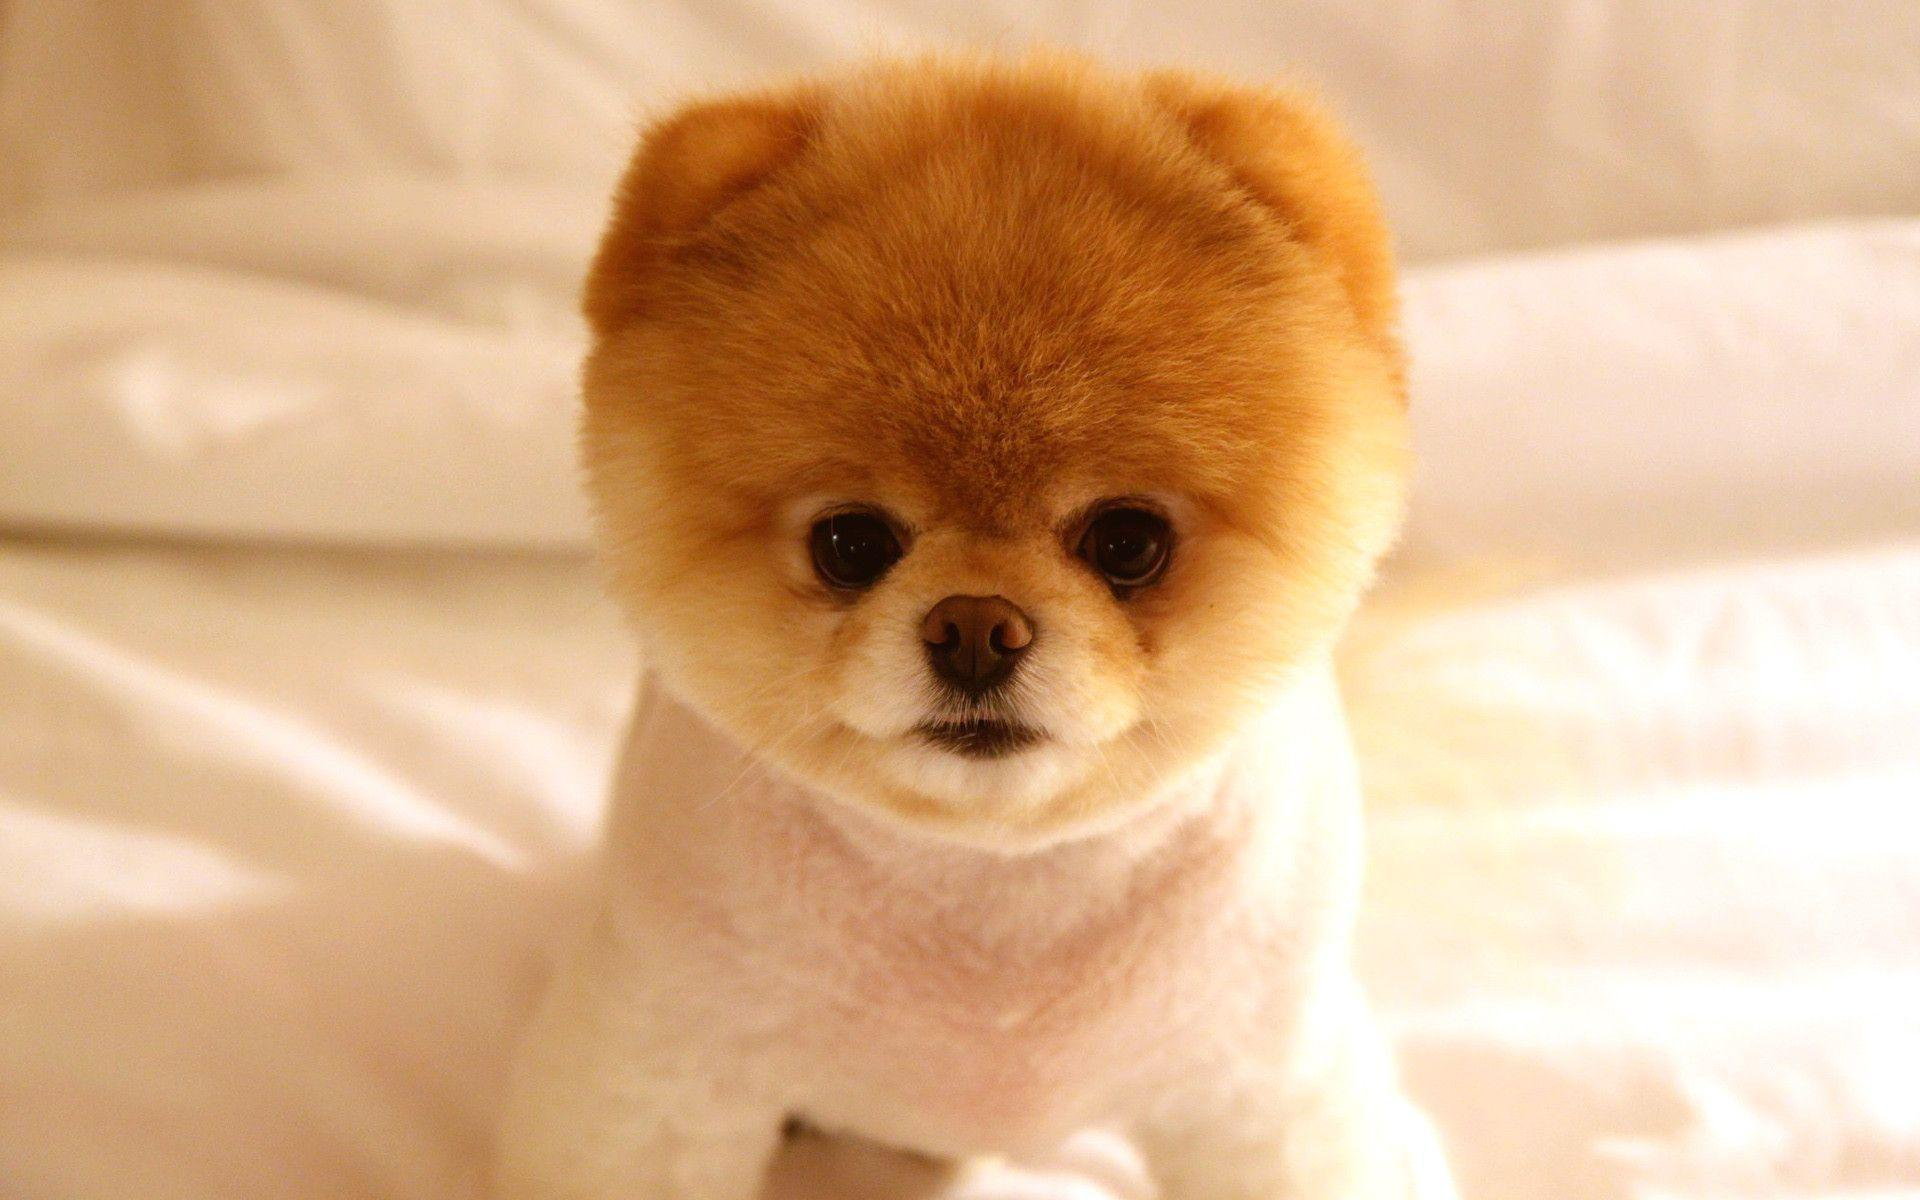 Cute Dog Boo Wallpapers | HD Wallpapers